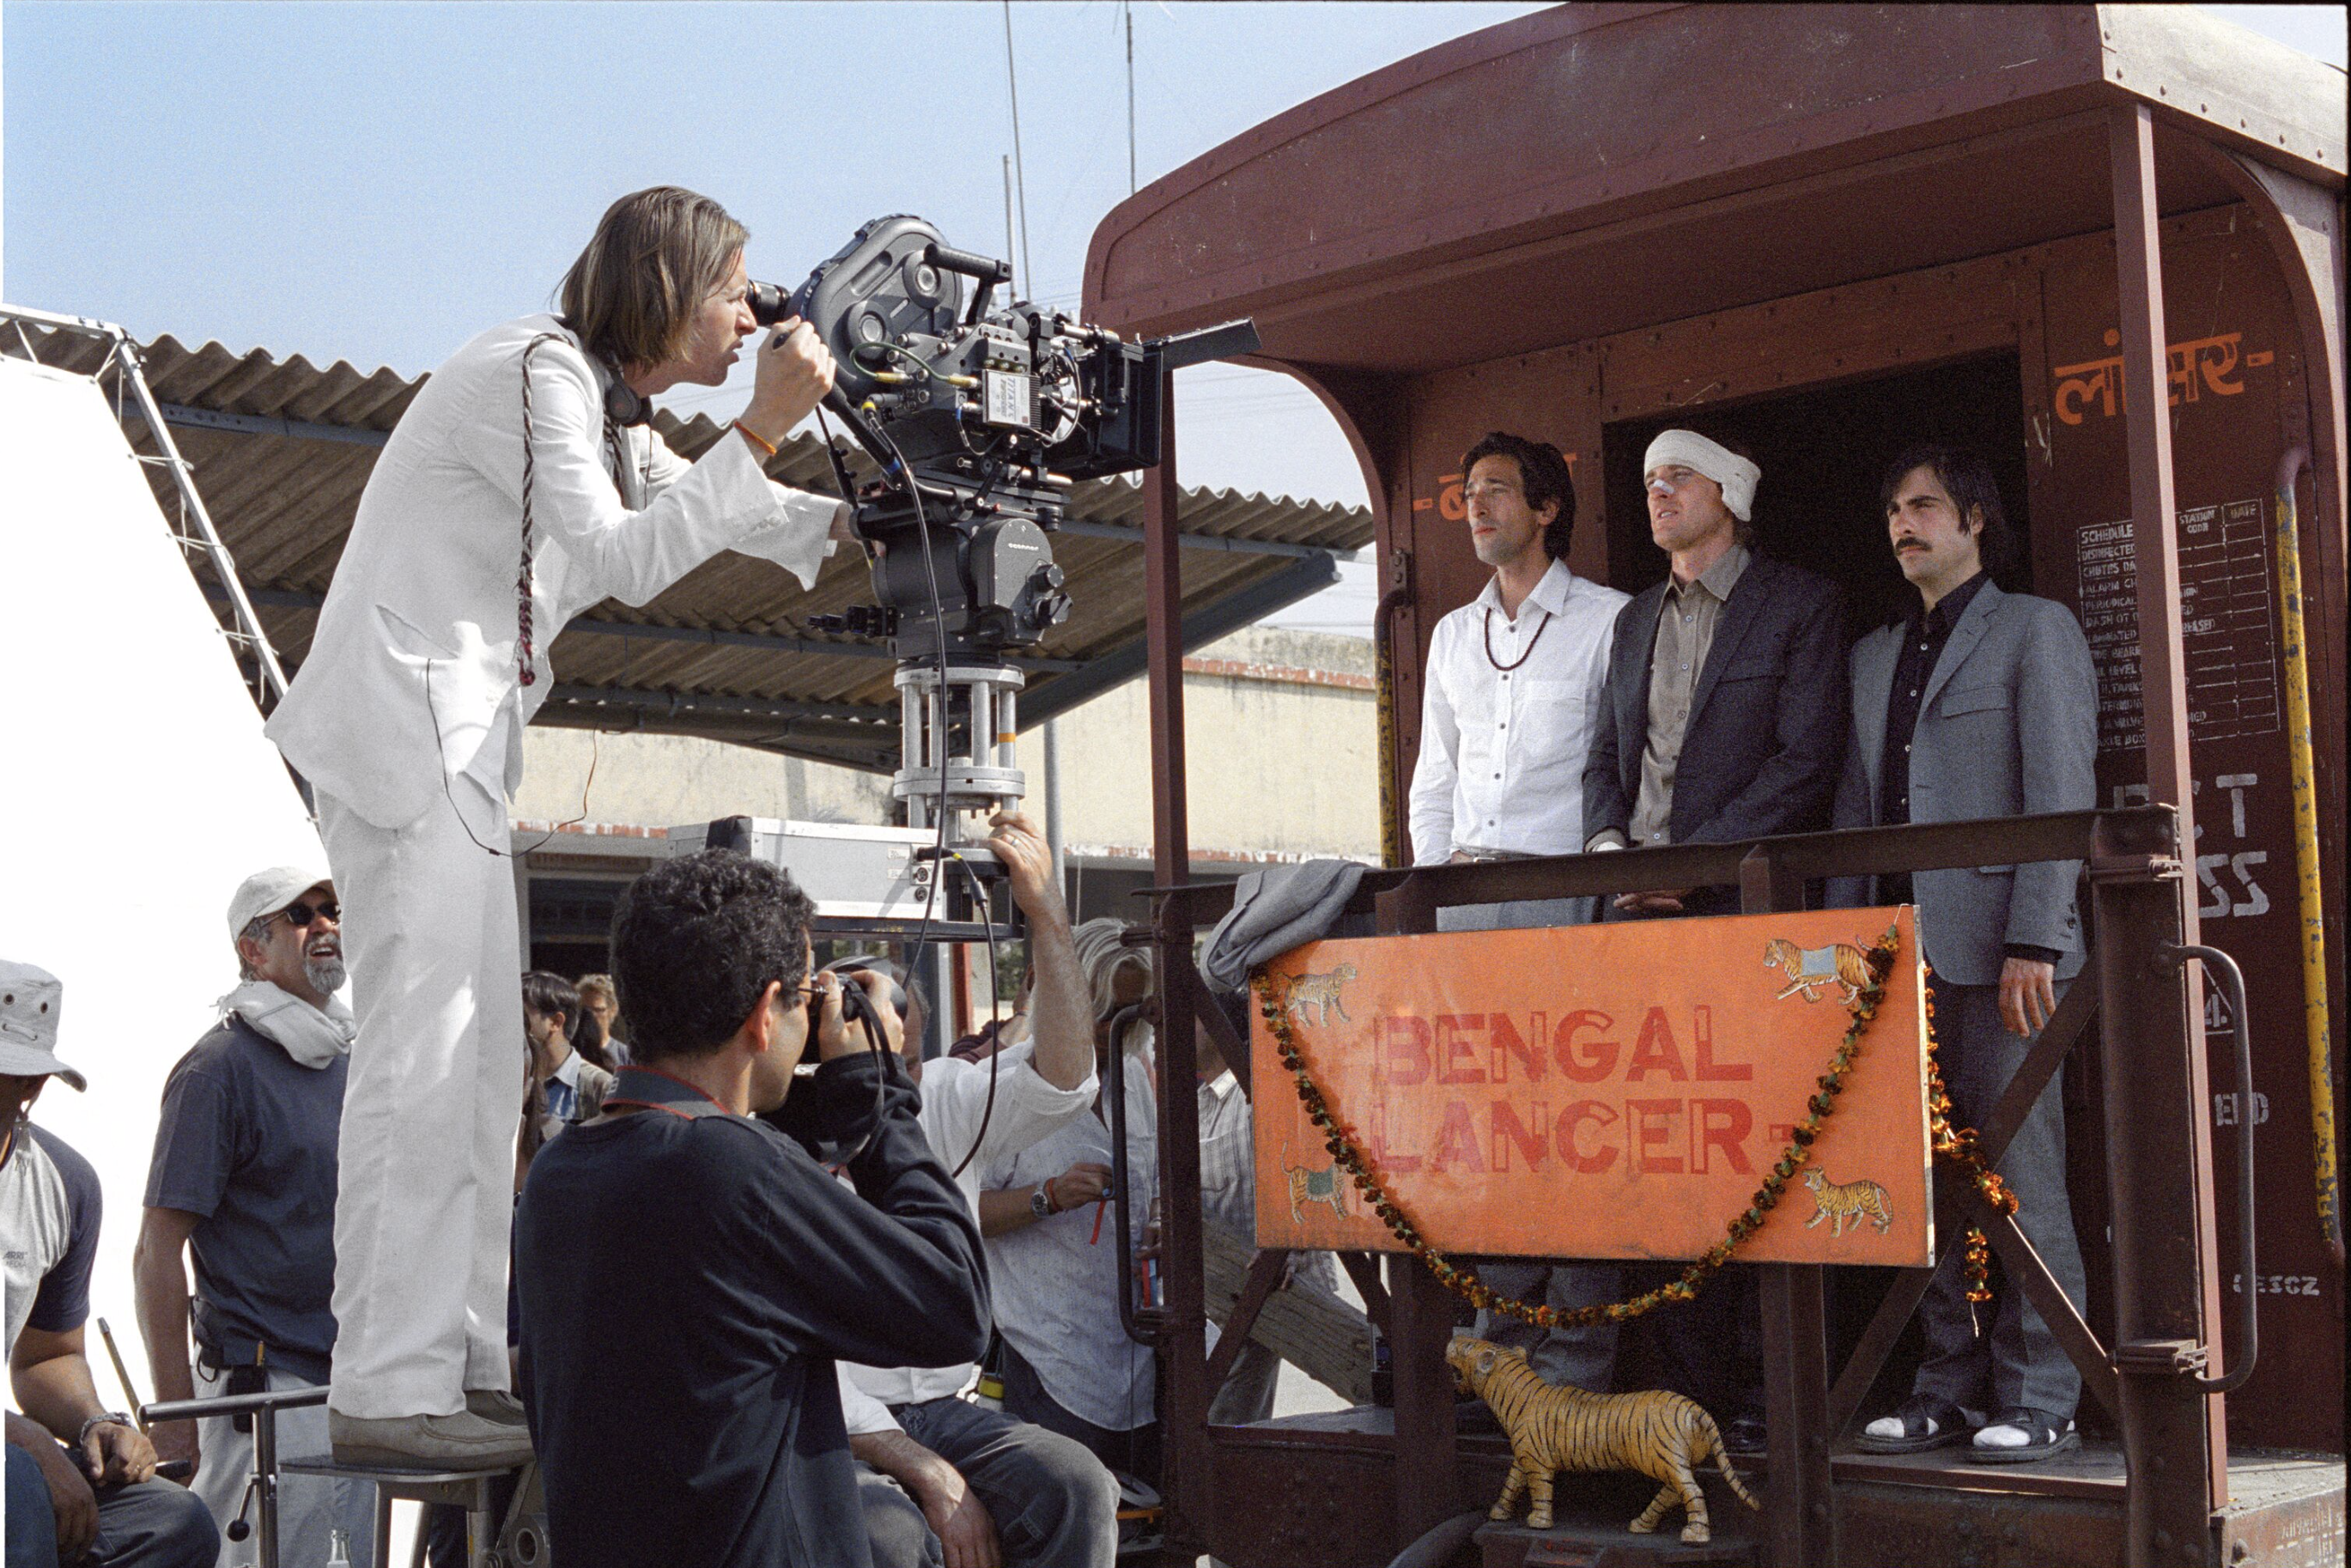 Wes Anderson blocking a scene with Adrien Brody, Owen Wilson and Jason Schwartzman, Rajasthan, India, 2007